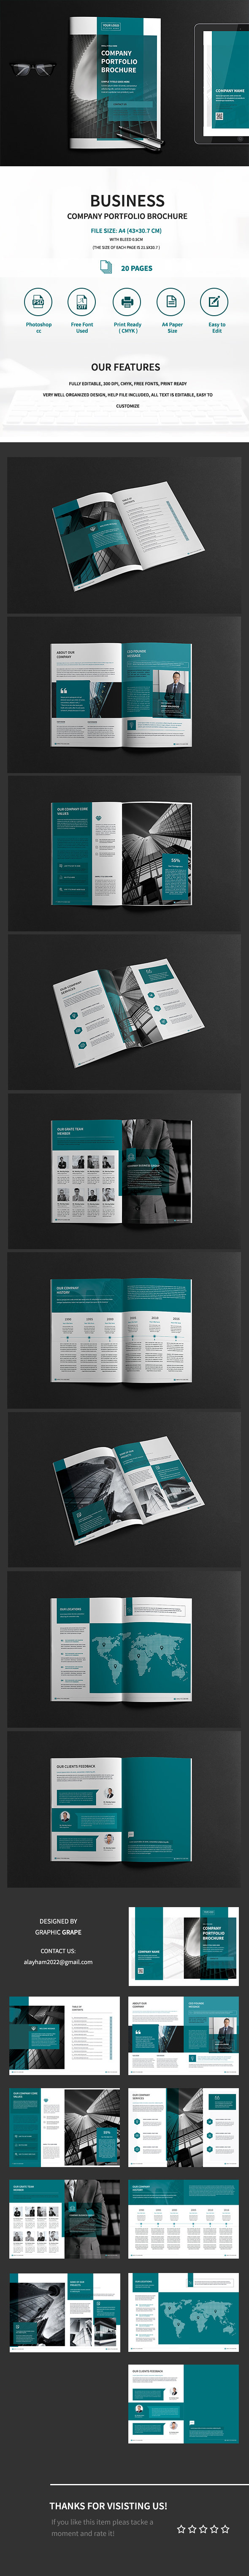 A4 Business Company Portfolio Brochure